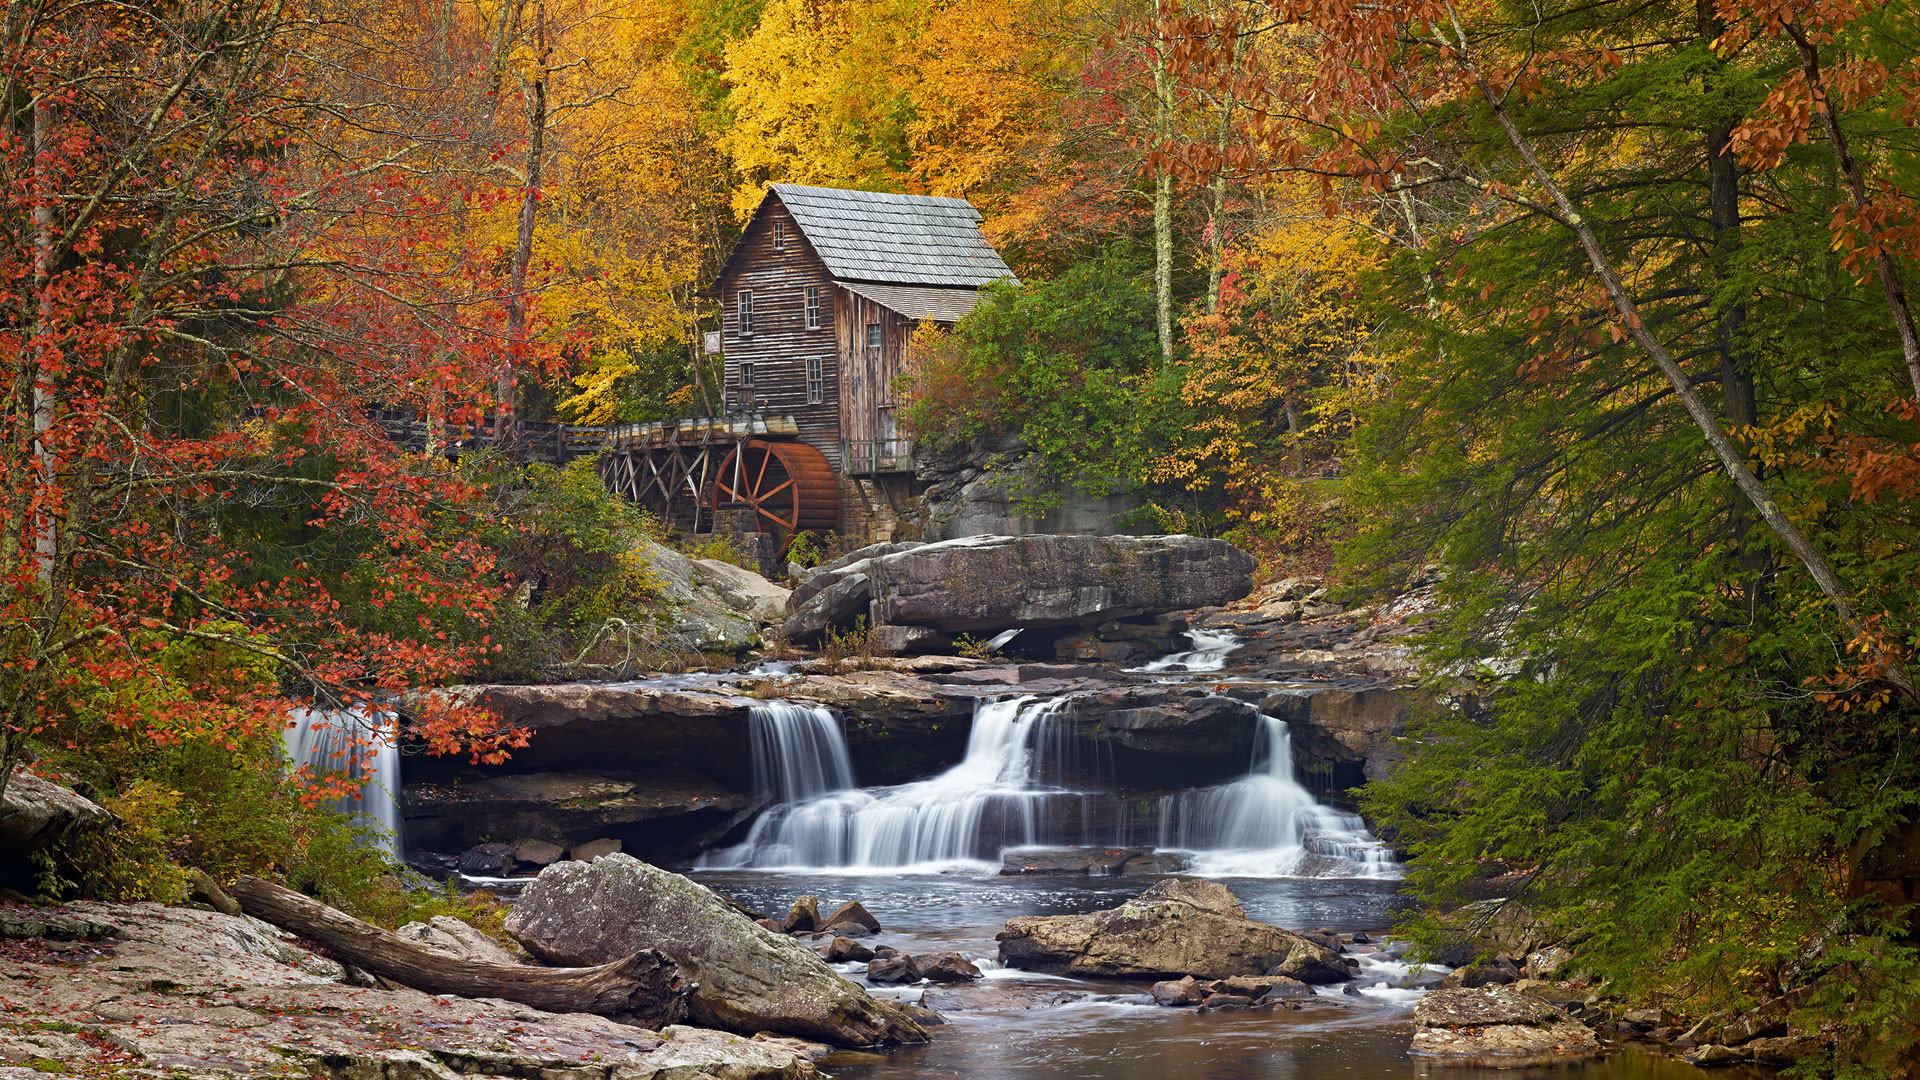 rural in hd | HD Wallpaper: West Virginia Autumn | Ed Cooley Fine Art  Photography